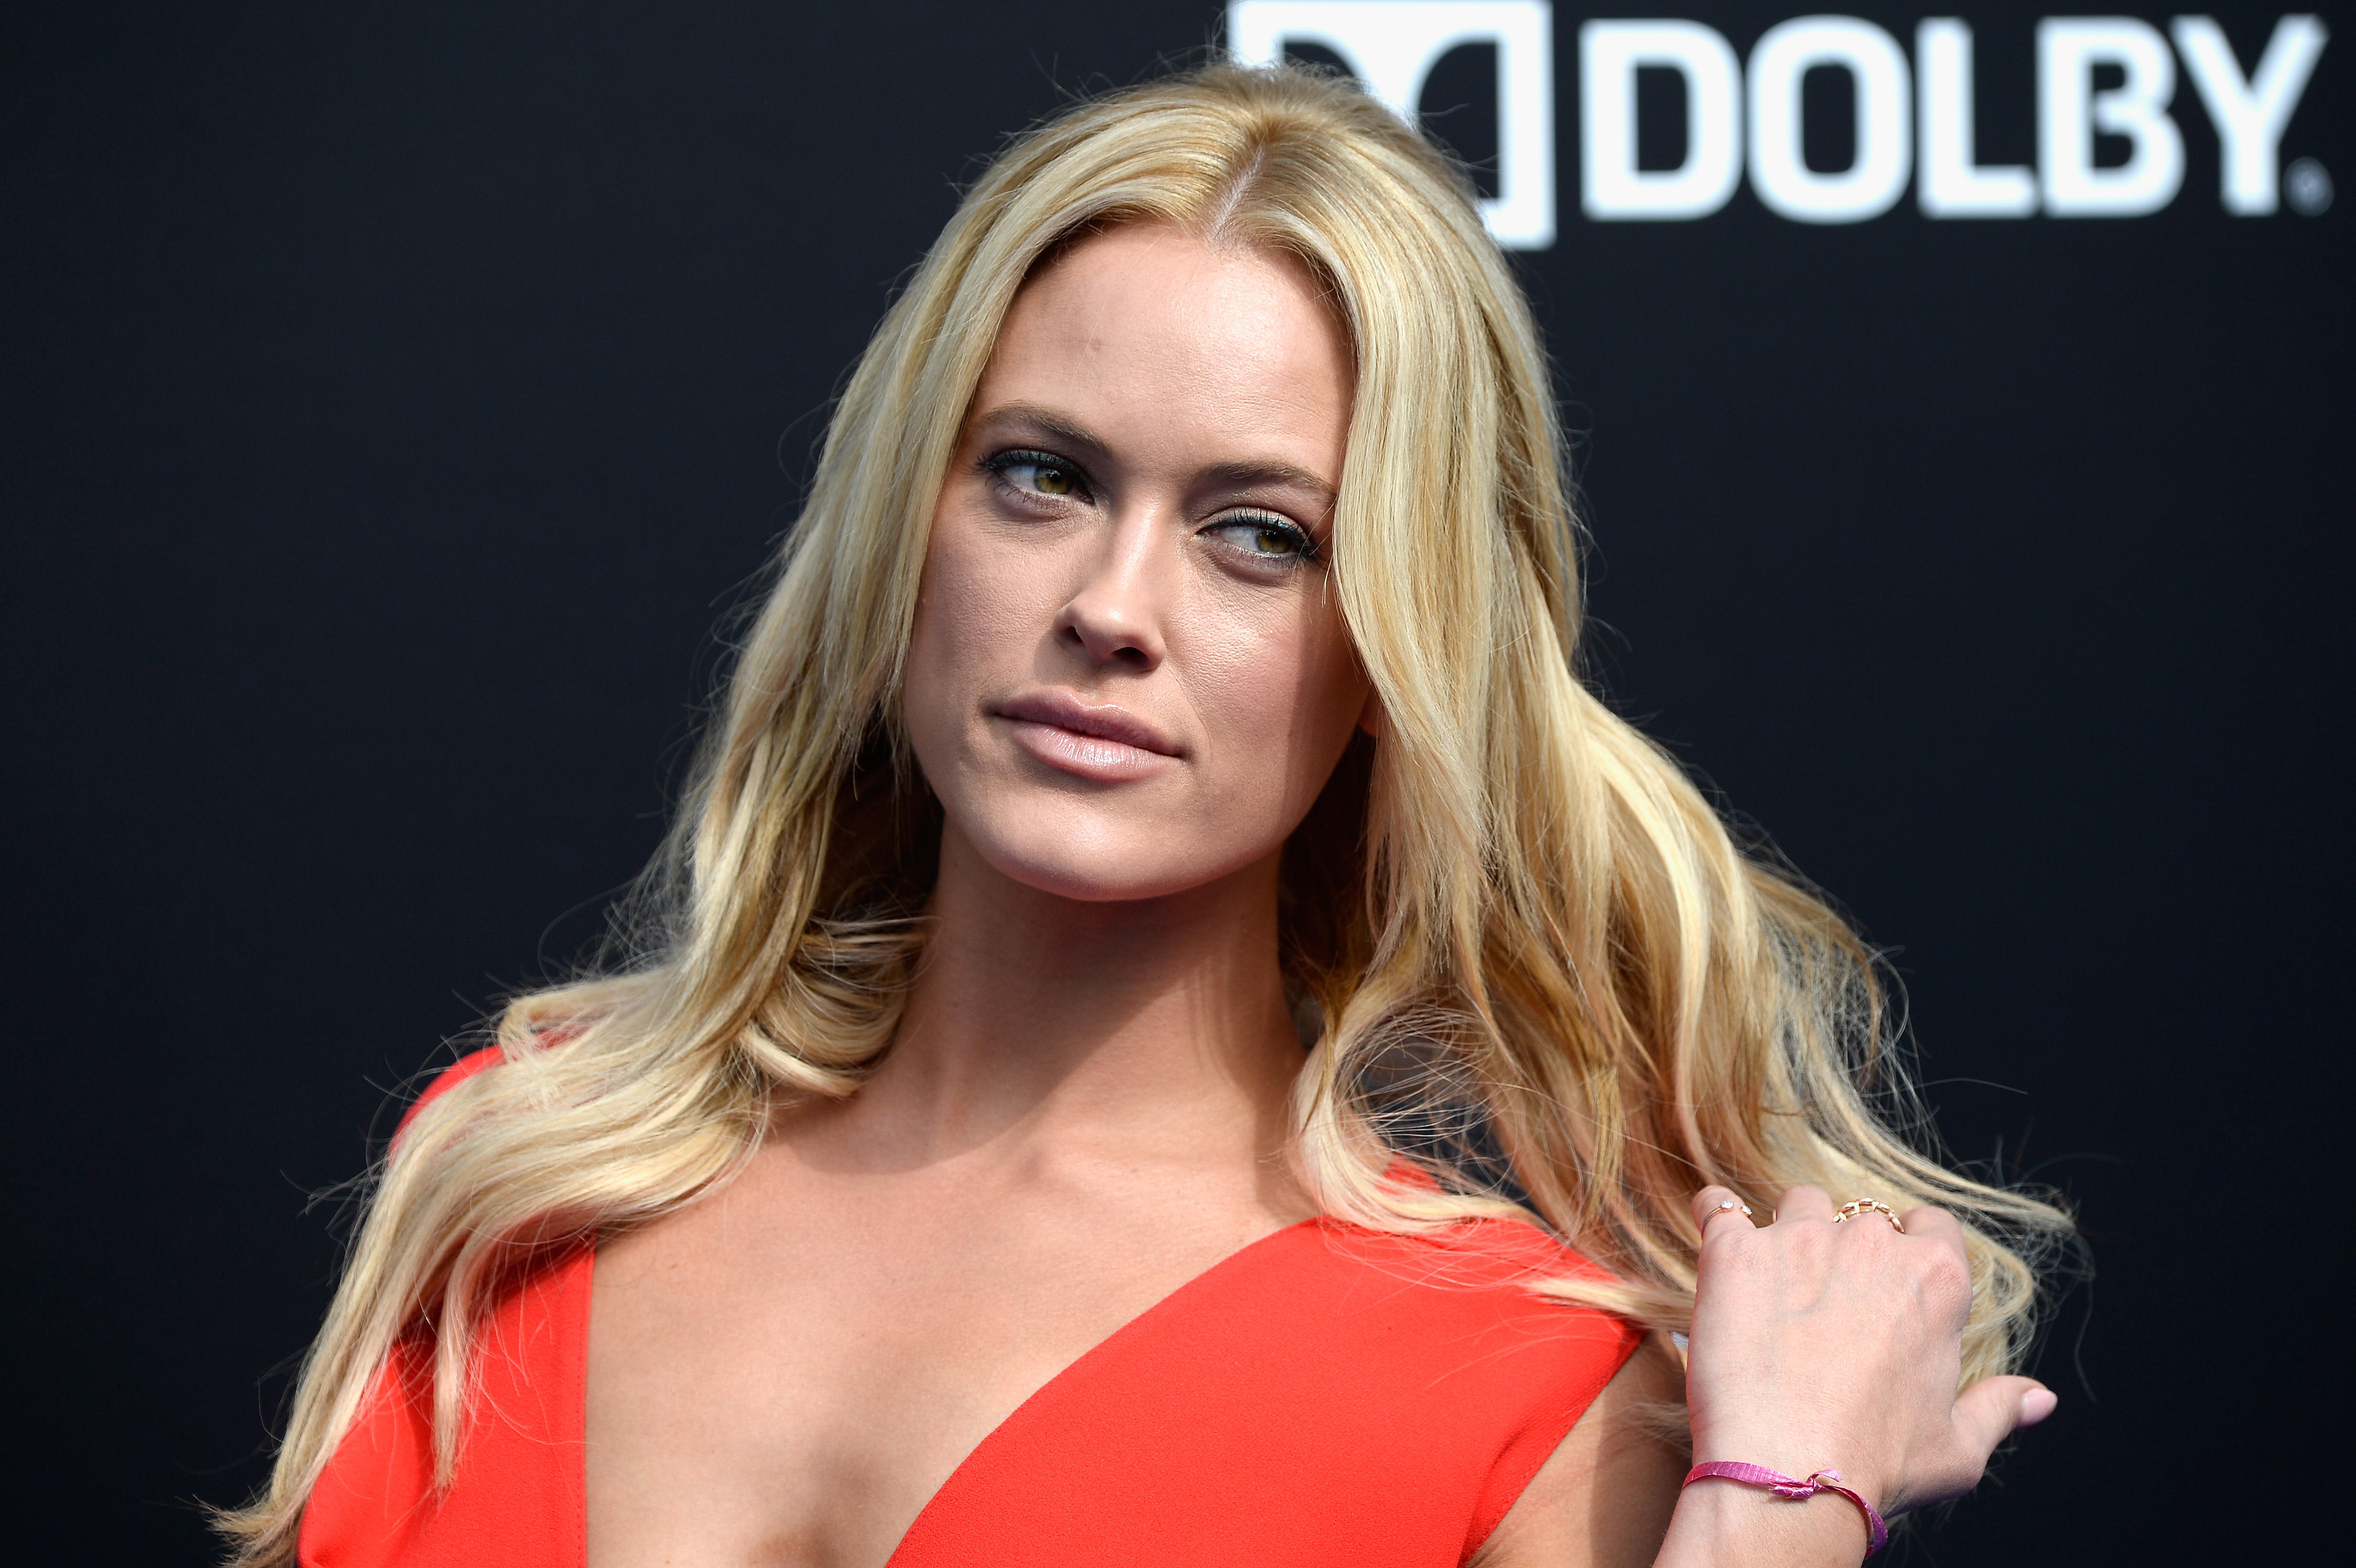 ANAHEIM, CA - MAY 09:  Actress Peta Murgatroyd attends the Premiere Of Disney's  Tomorrowland  at AMC Downtown Disney 12 Theater on May 9, 2015 in Anaheim, California.  (Photo by Frazer Harrison/Getty Images)